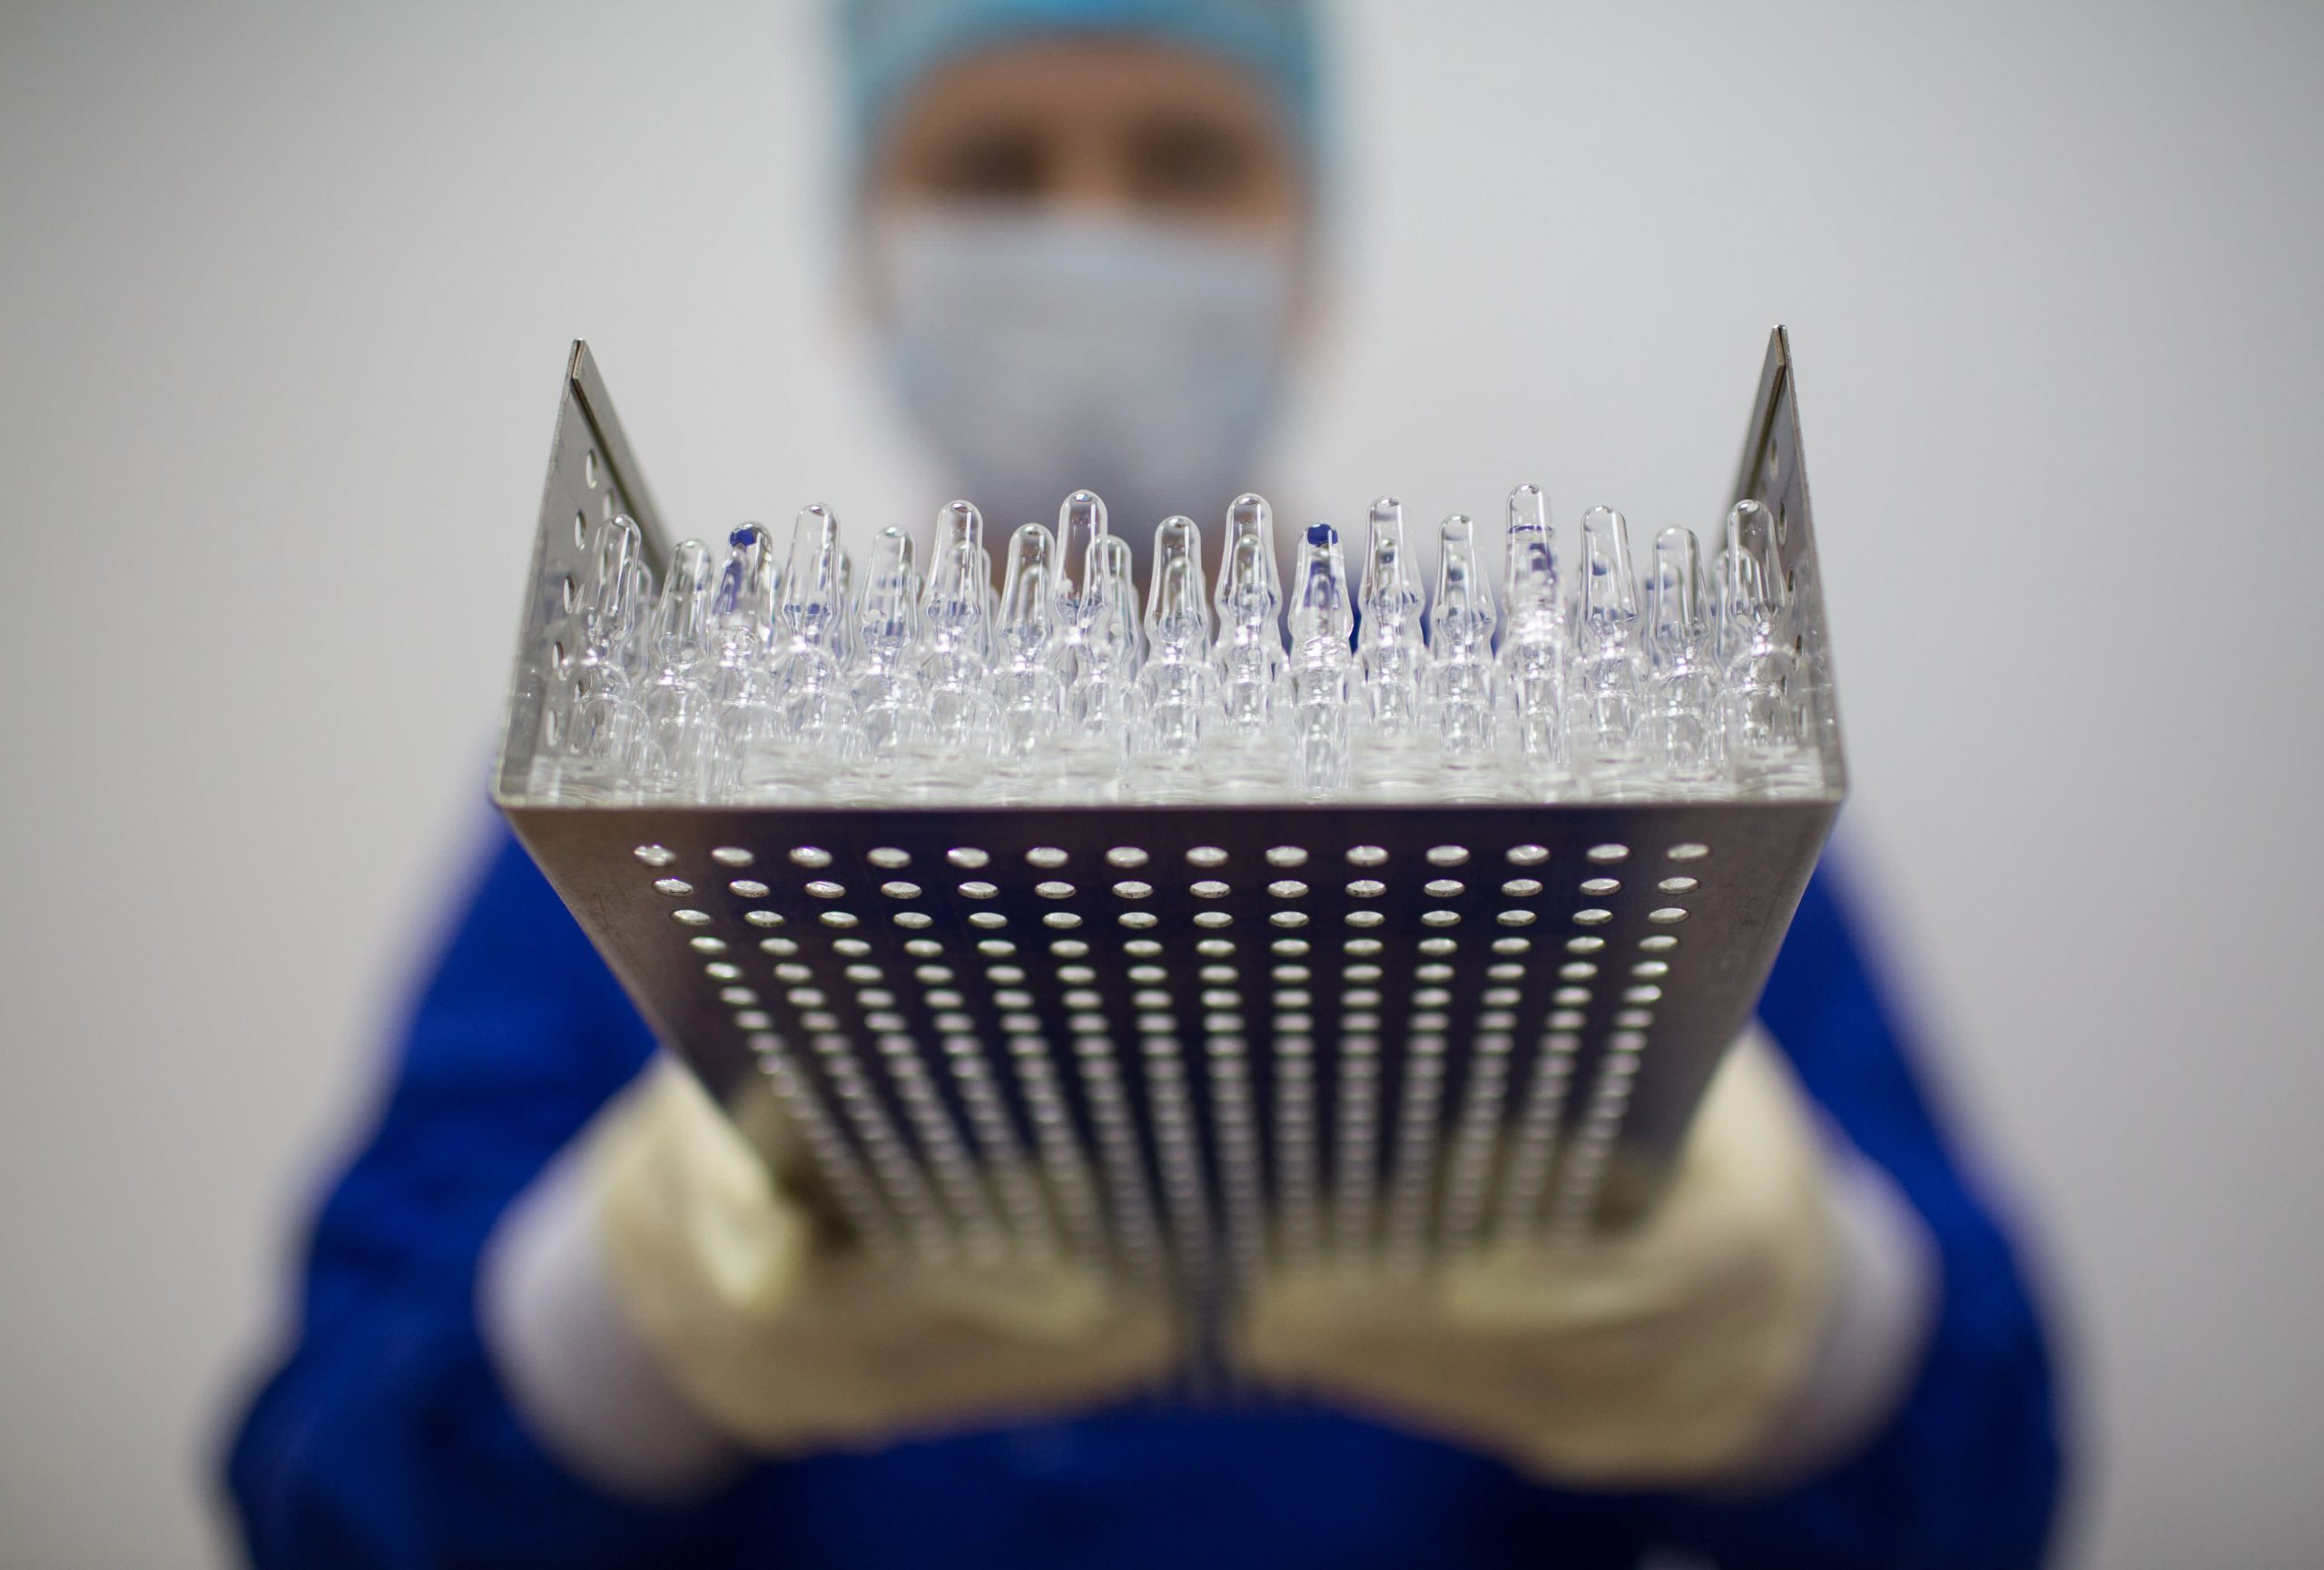 Gritstone Oncology inventory run triple digits after NIH backs vaccine examine